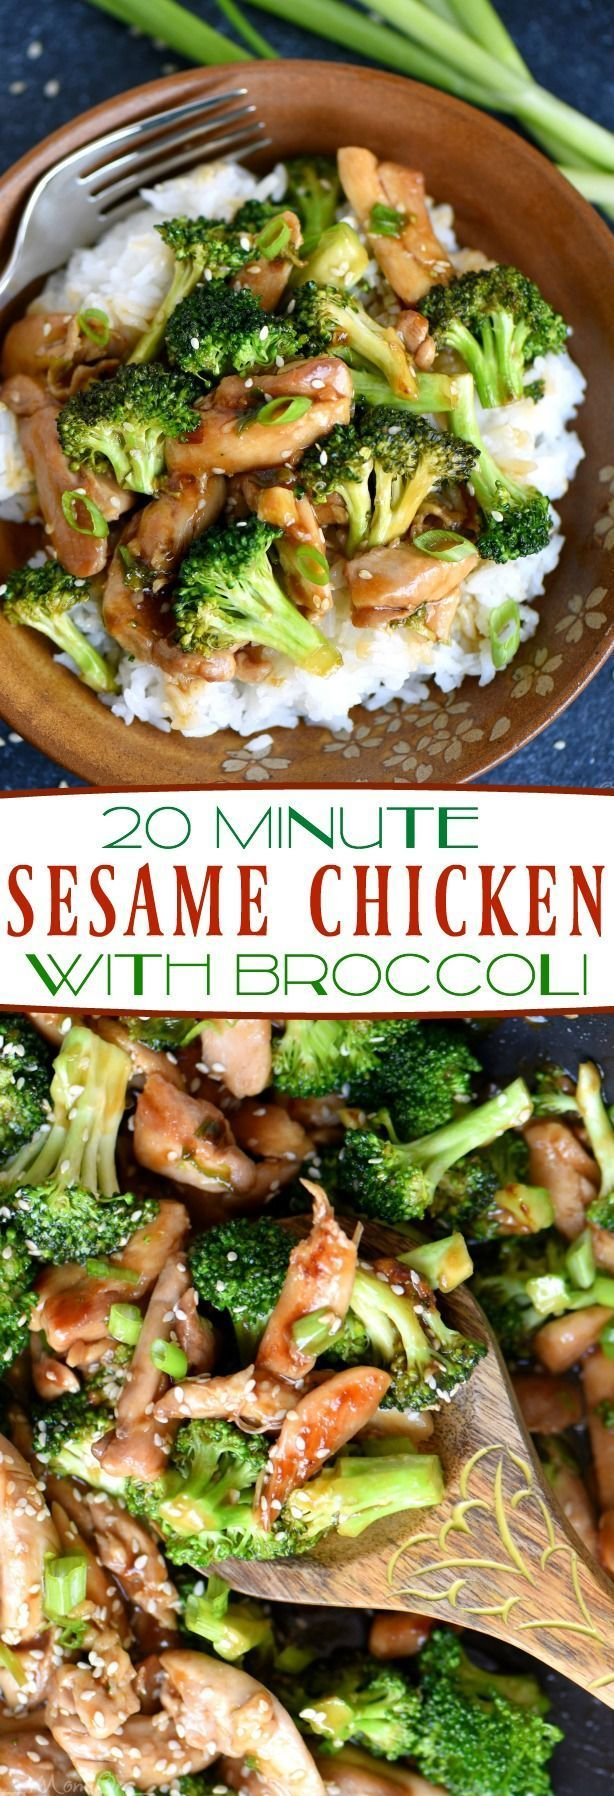 This easy 20 Minute Sesame Chicken with Broccoli is going to quickly become your favorite go-to easy dinner! Serve over white or brown rice for the perfect meal!